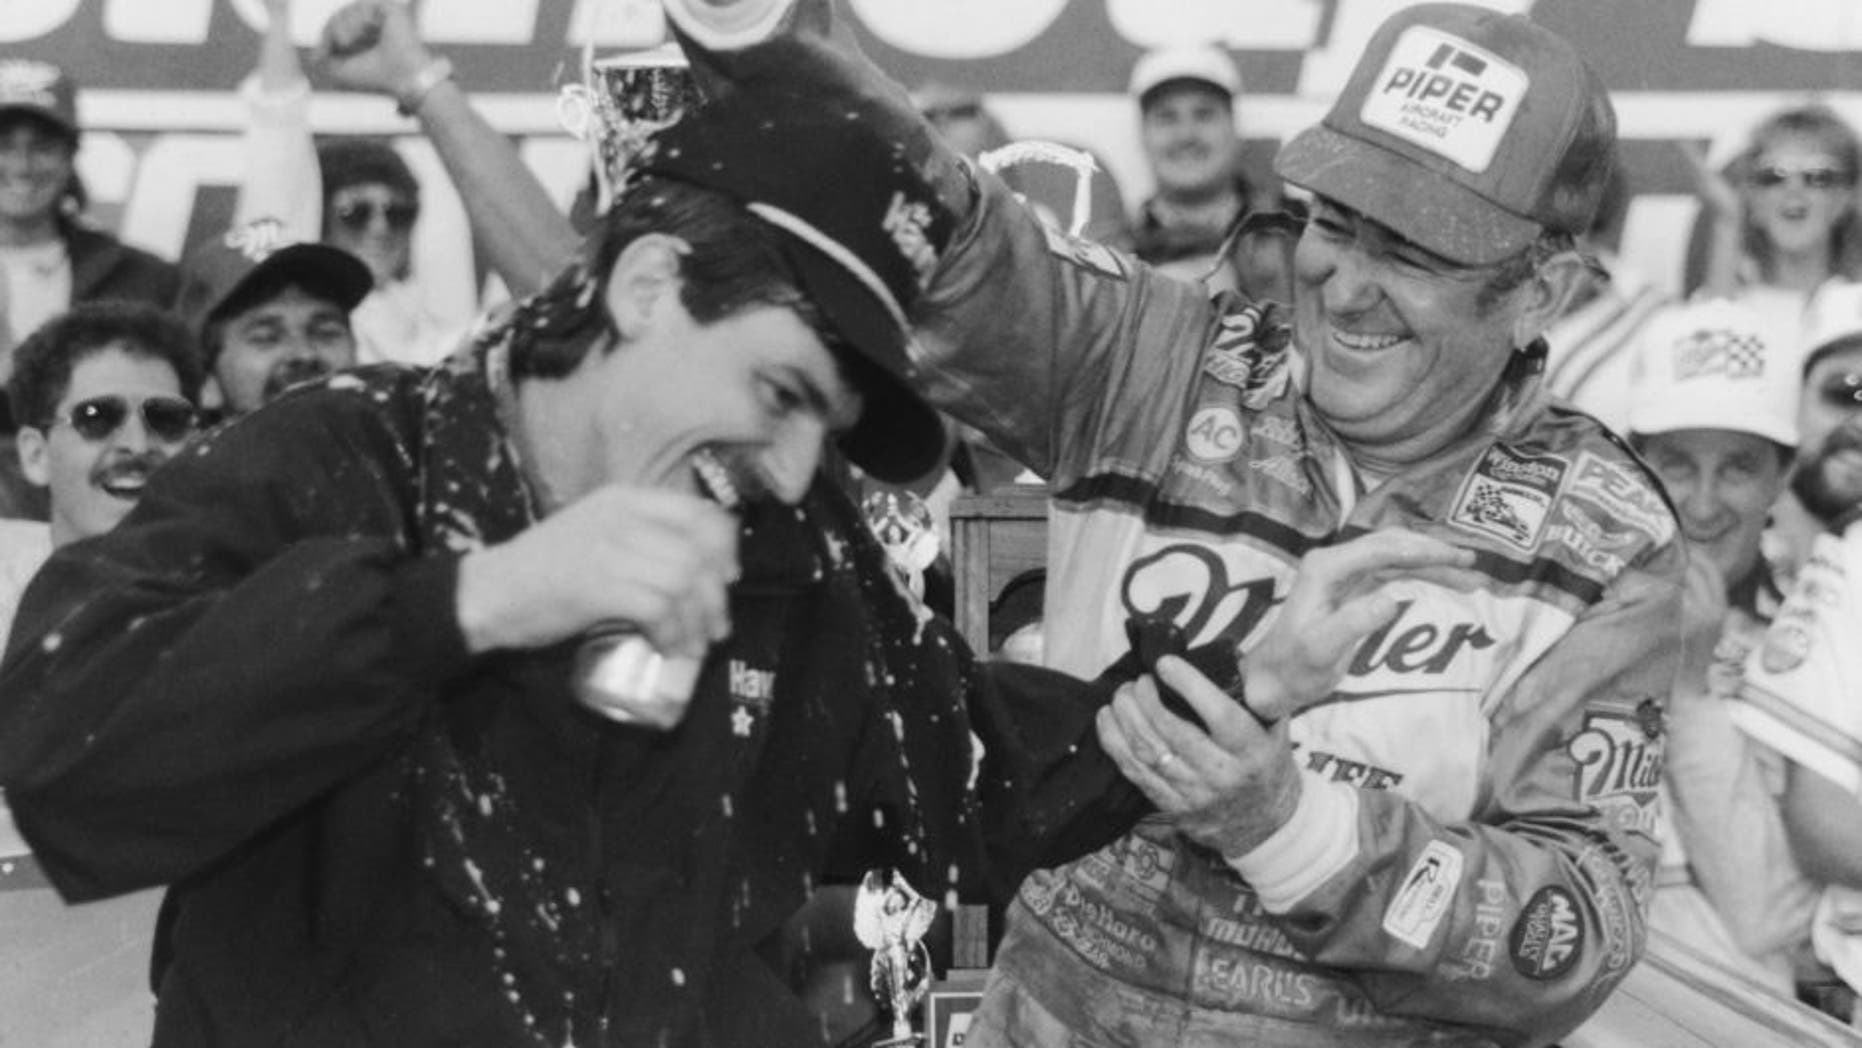 DAYTONA BEACH, FL - FEBRUARY 14: Bobby Allison driver of the #12 Buick celebrates with his son Davey (Feb 25, 1961-July 13, 1993) driver of the Robert Yates Racing #28 Texaco-Havoline Ford after winning the 1988 NASCAR Winston Cup Daytona 500 at the Daytona International Speedway on February 14, 1988 in Daytona Beach, Florida. (Photo by ISC Archives via Getty Images)